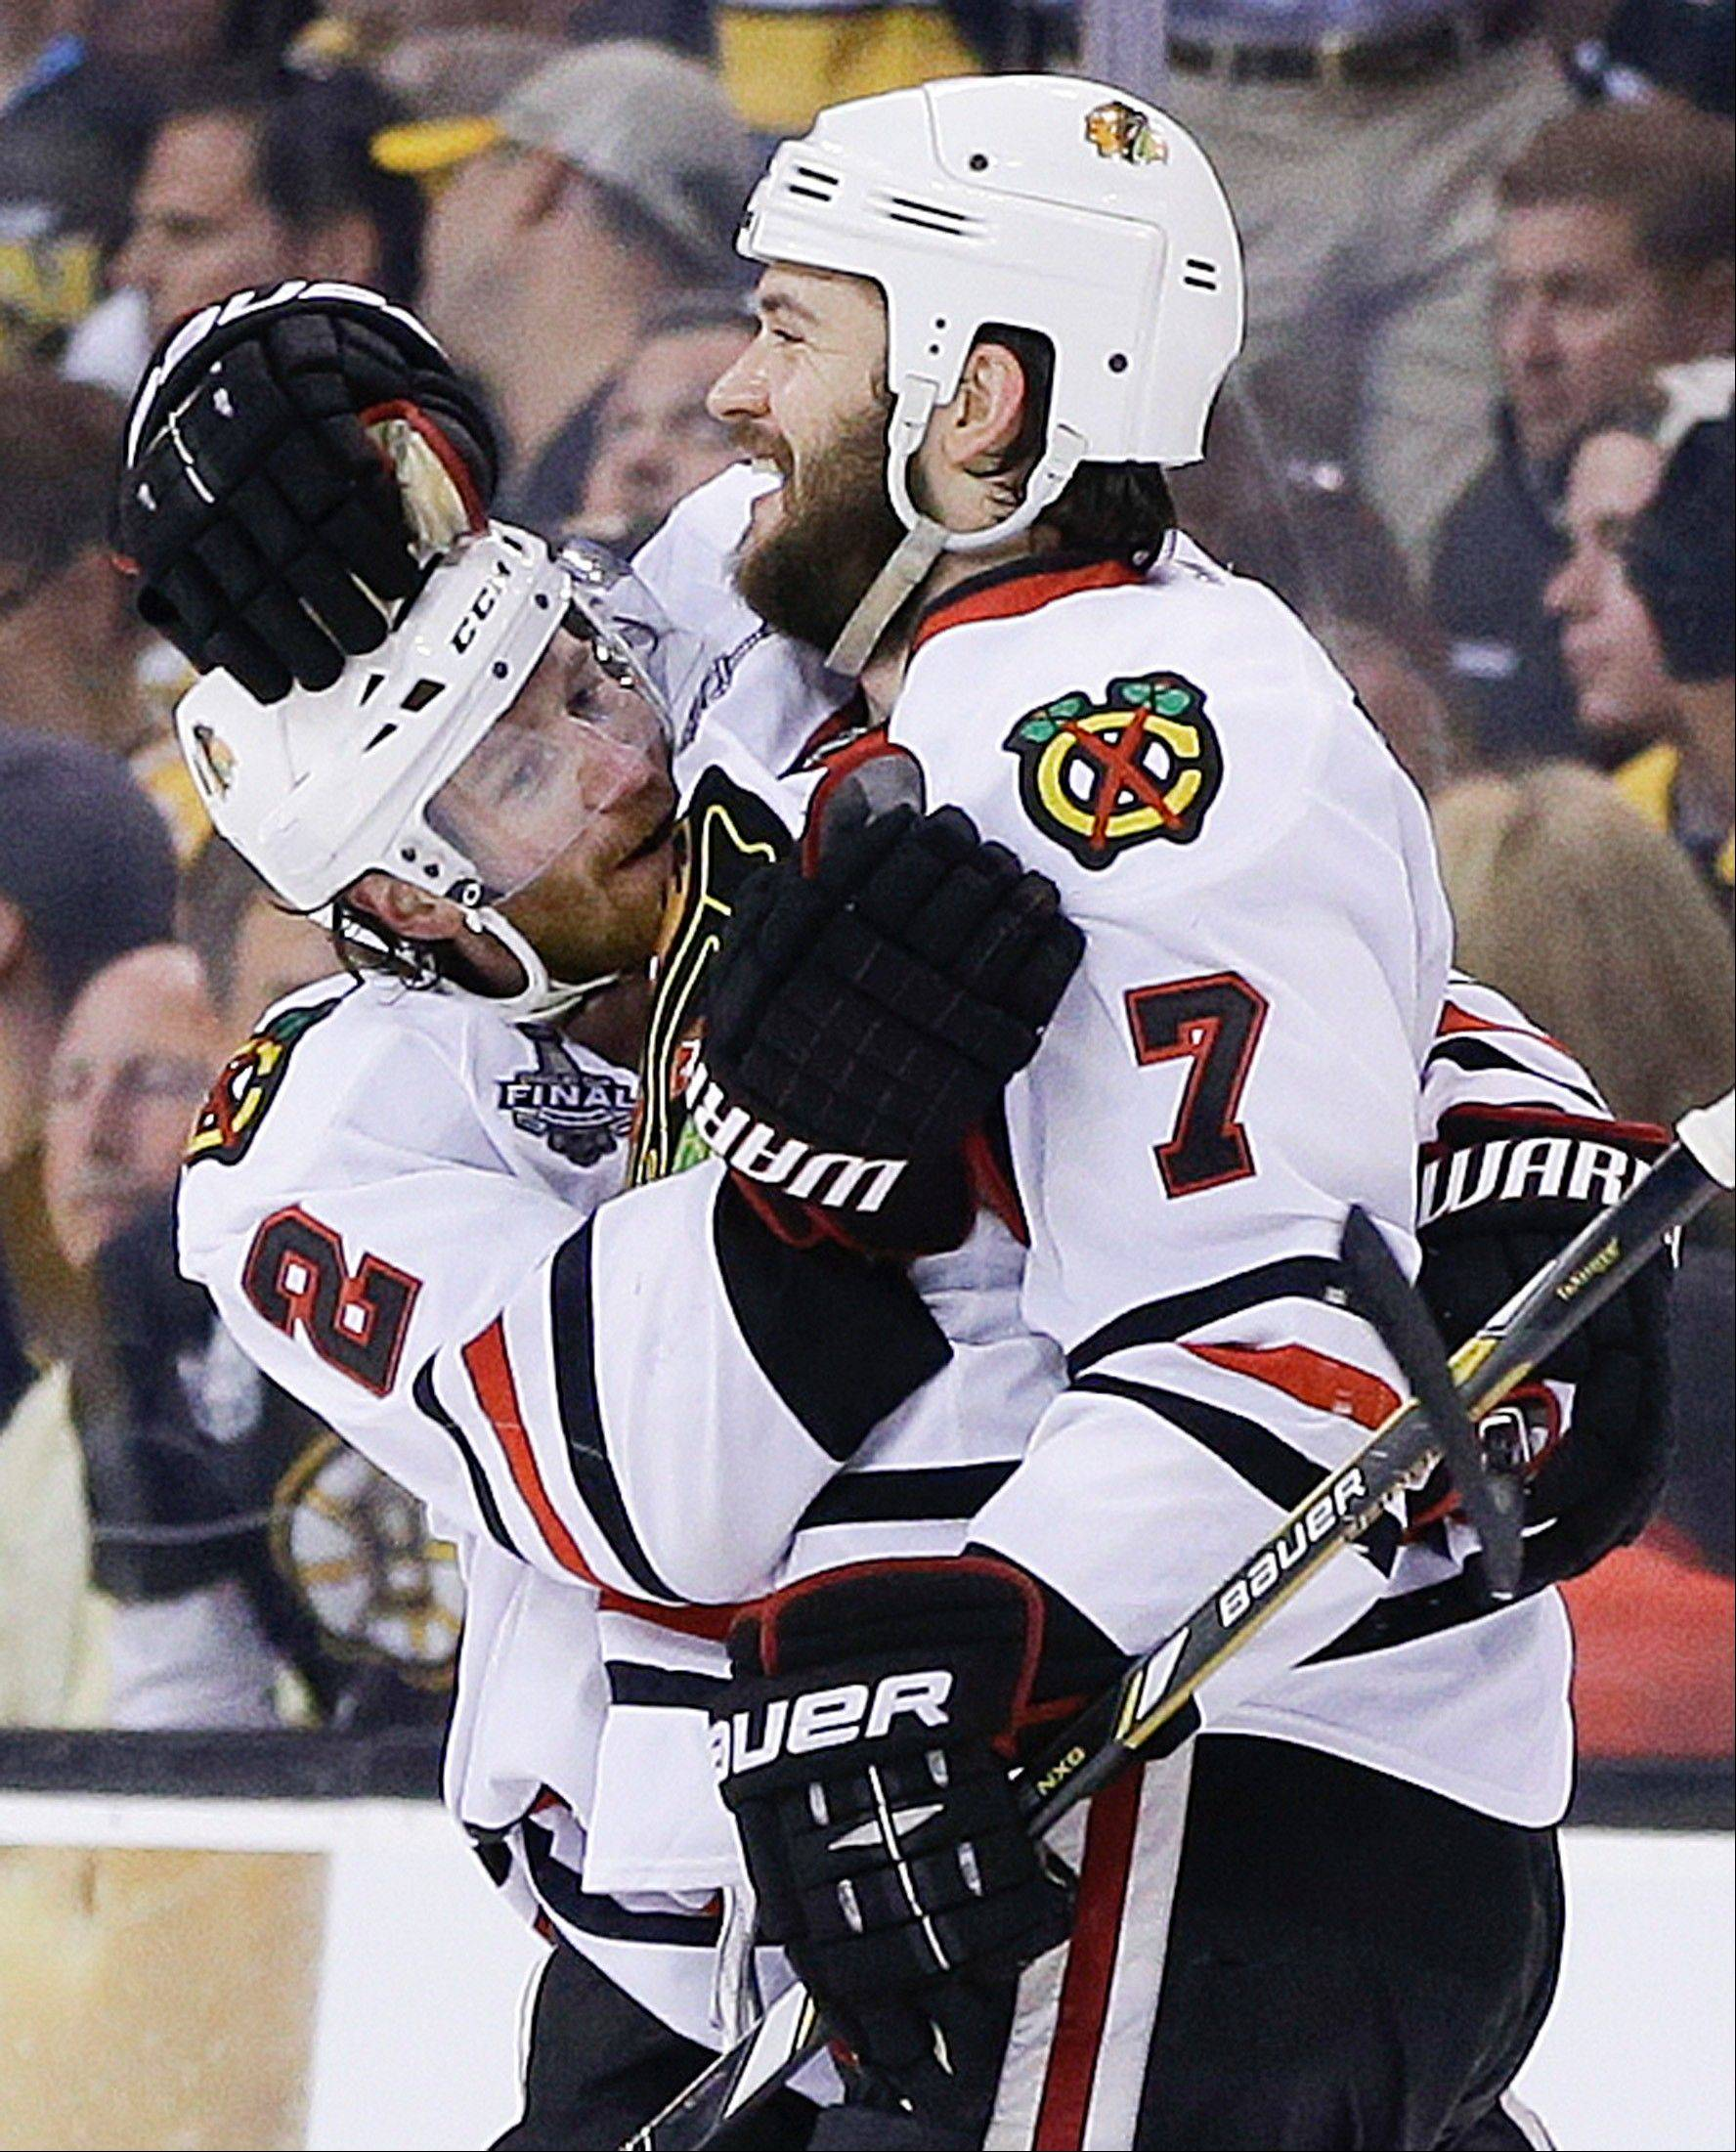 Blackhawks defenseman Brent Seabrook (7) celebrates his game-winning goal against the Boston Bruins with defenseman Duncan Keith (2) during Game 4 of the NHL hockey Stanley Cup Finals Wednesday in Boston. Chicago won 6-5.